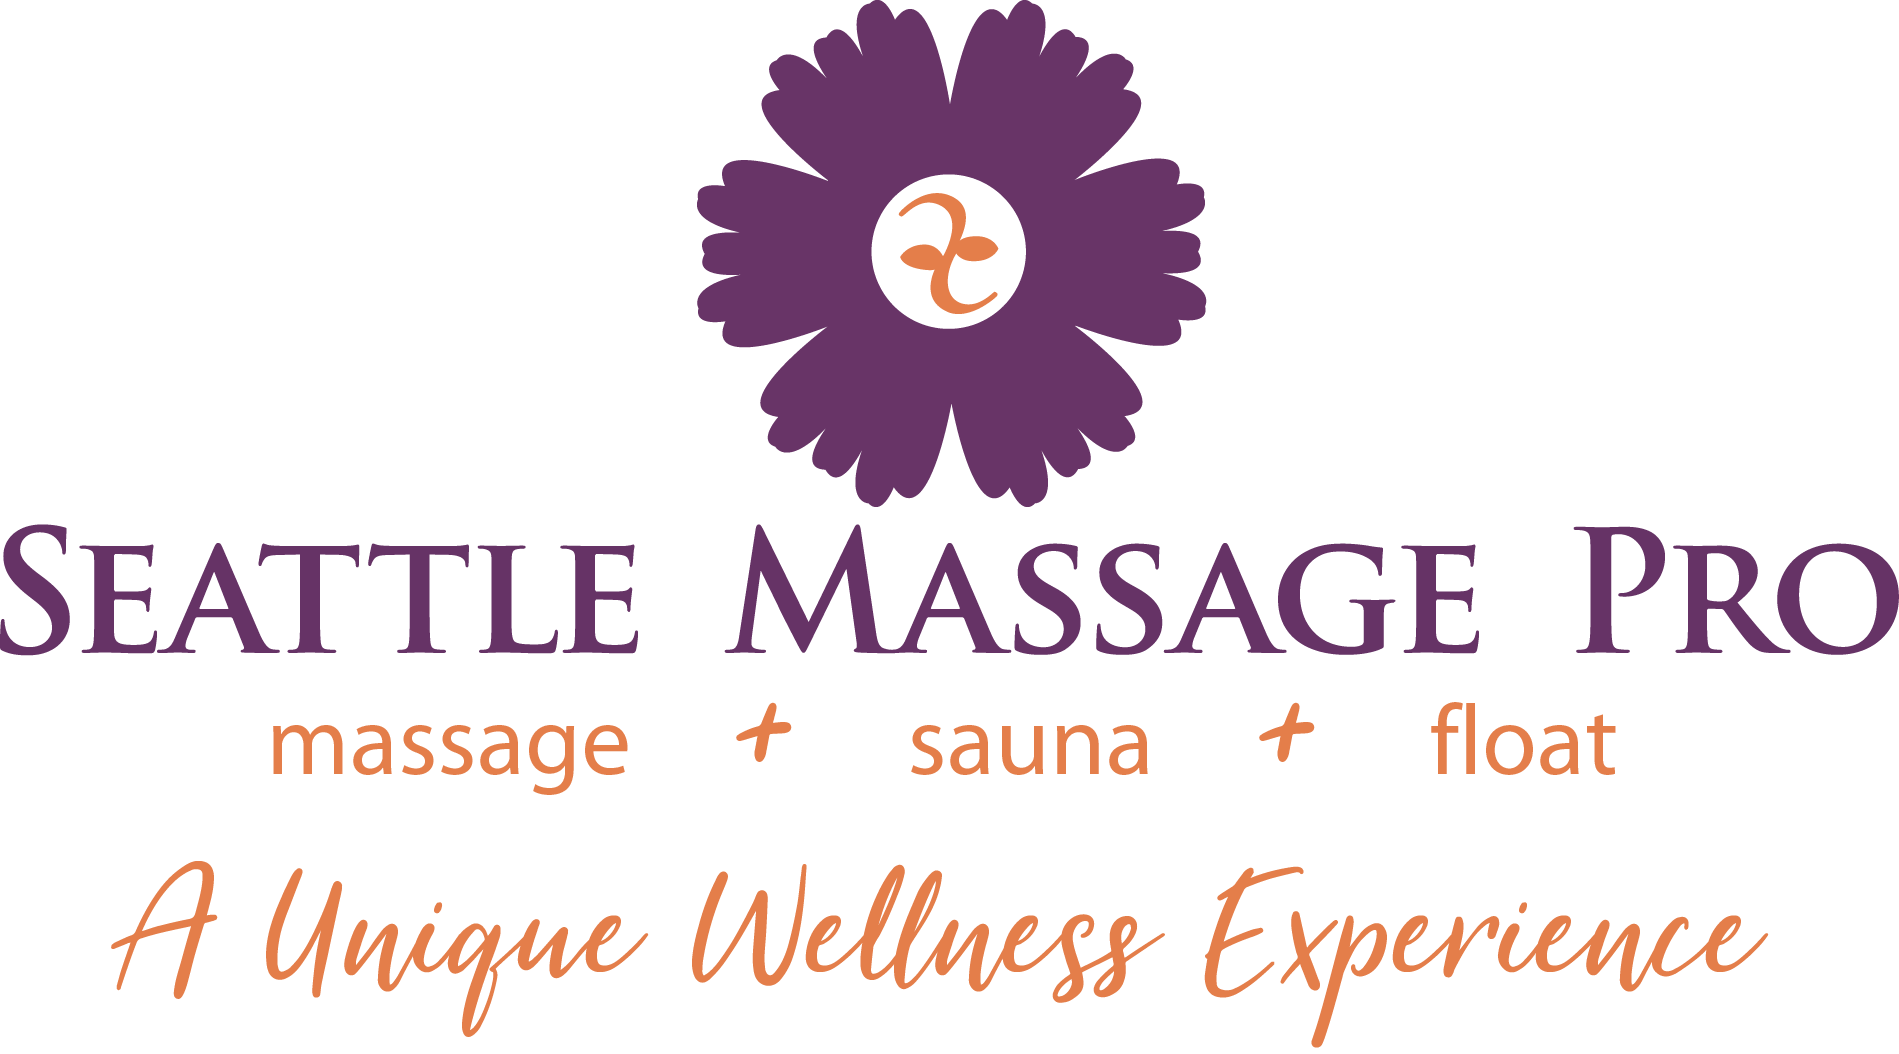 Seattle Massage Pro